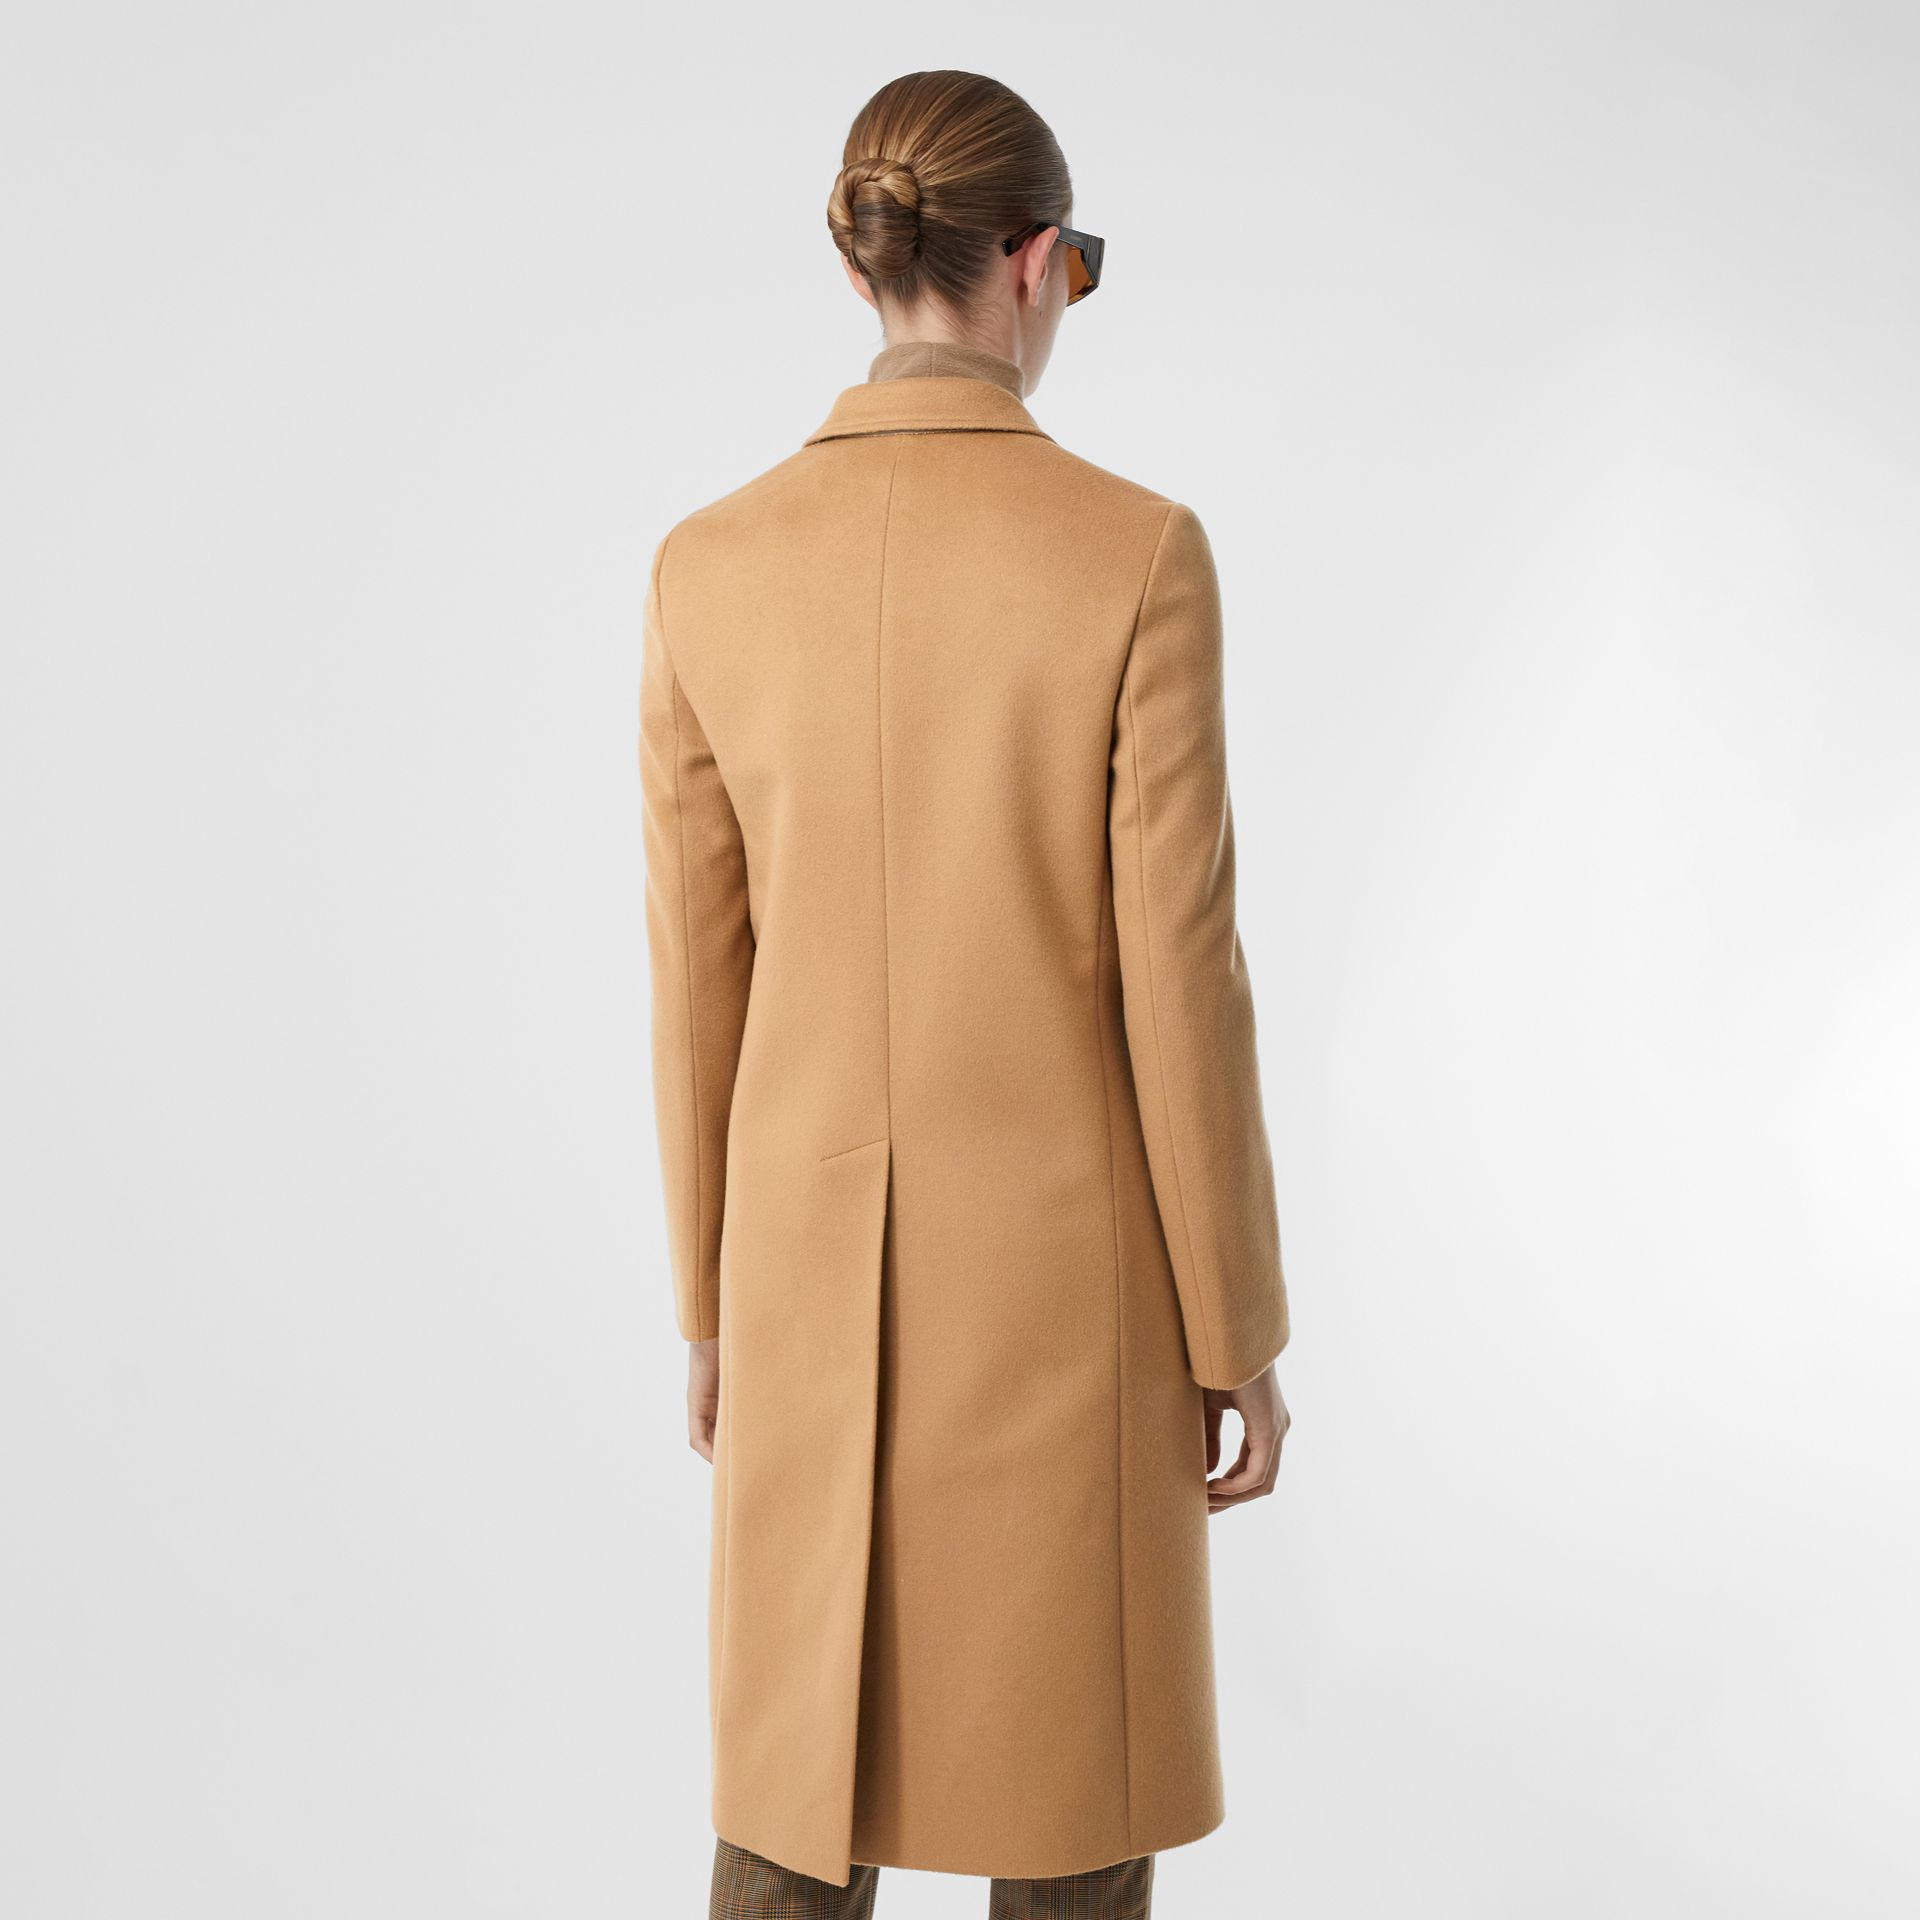 Wool Cashmere Tailored Coat in Light Camel - Women | Burberry - gallery image 2